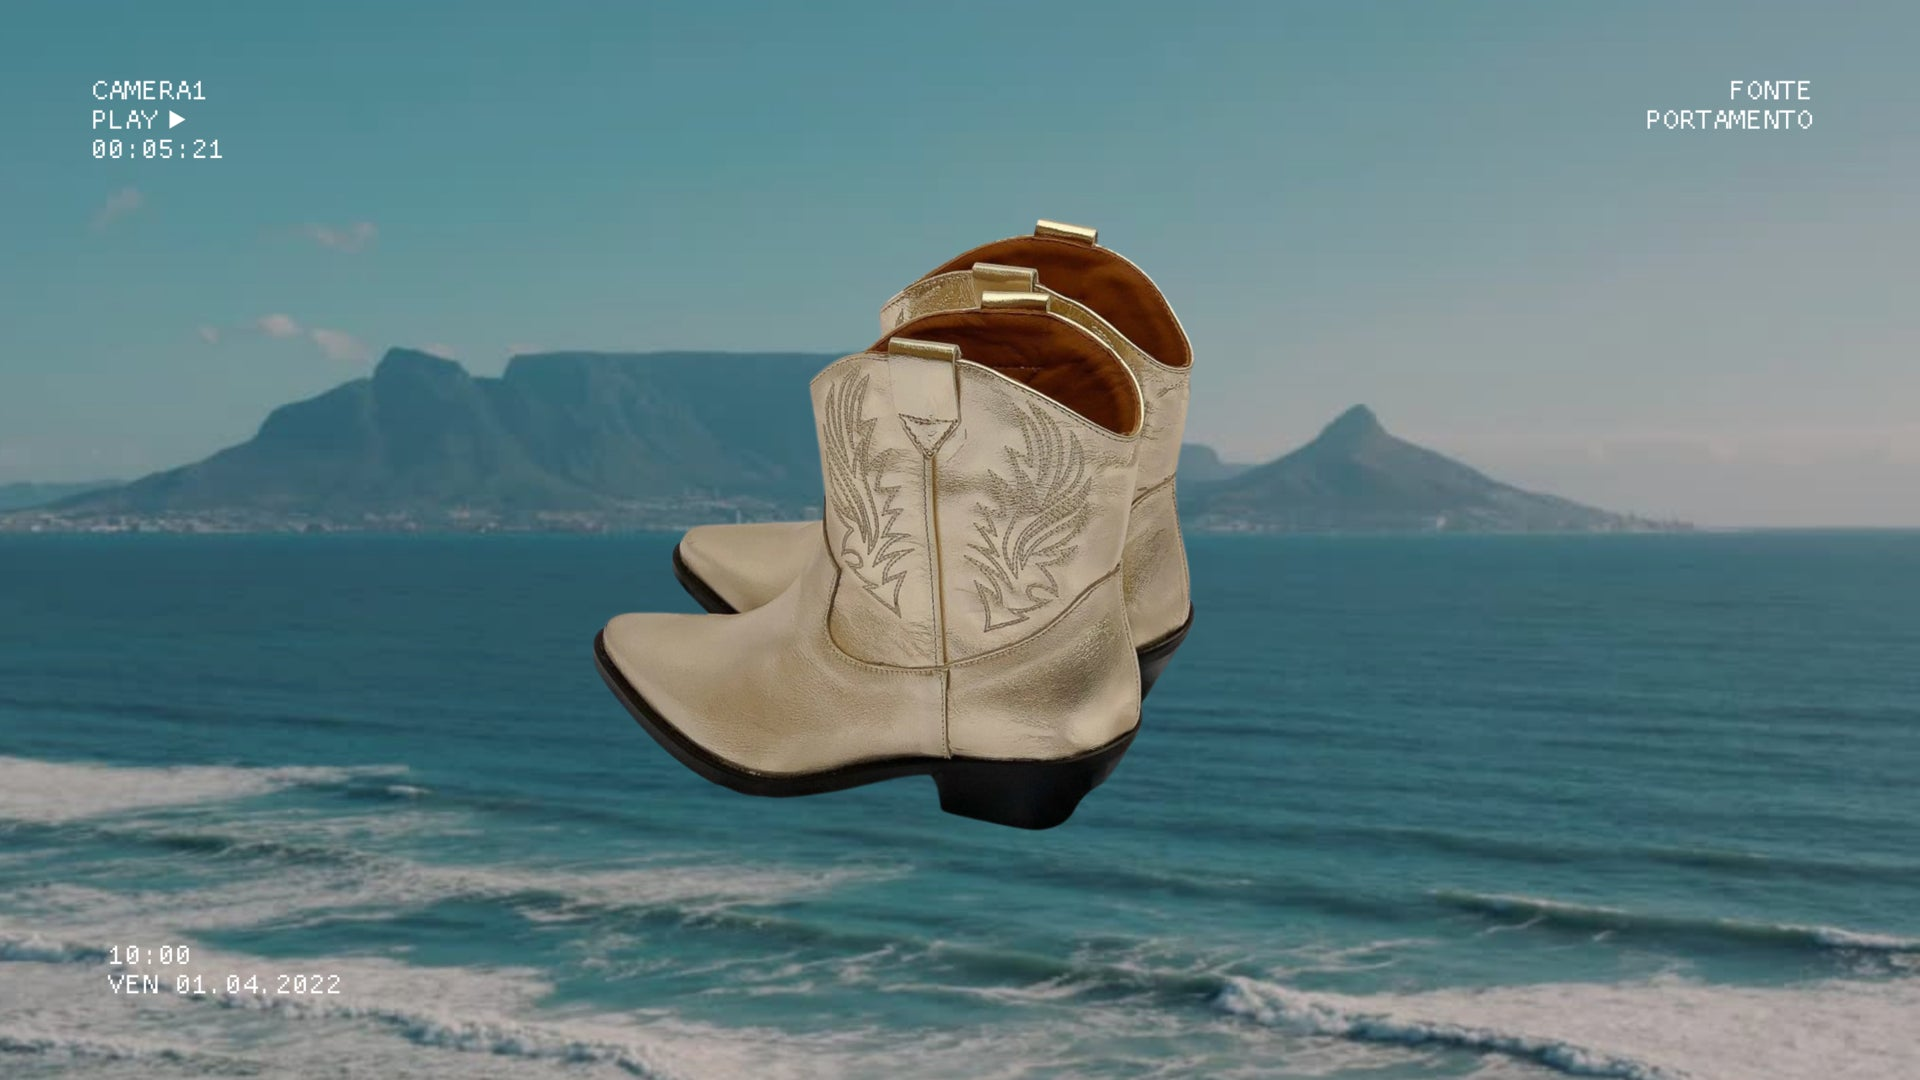 Portamento white leather platform sandals. Made in Italy. 100% leather.